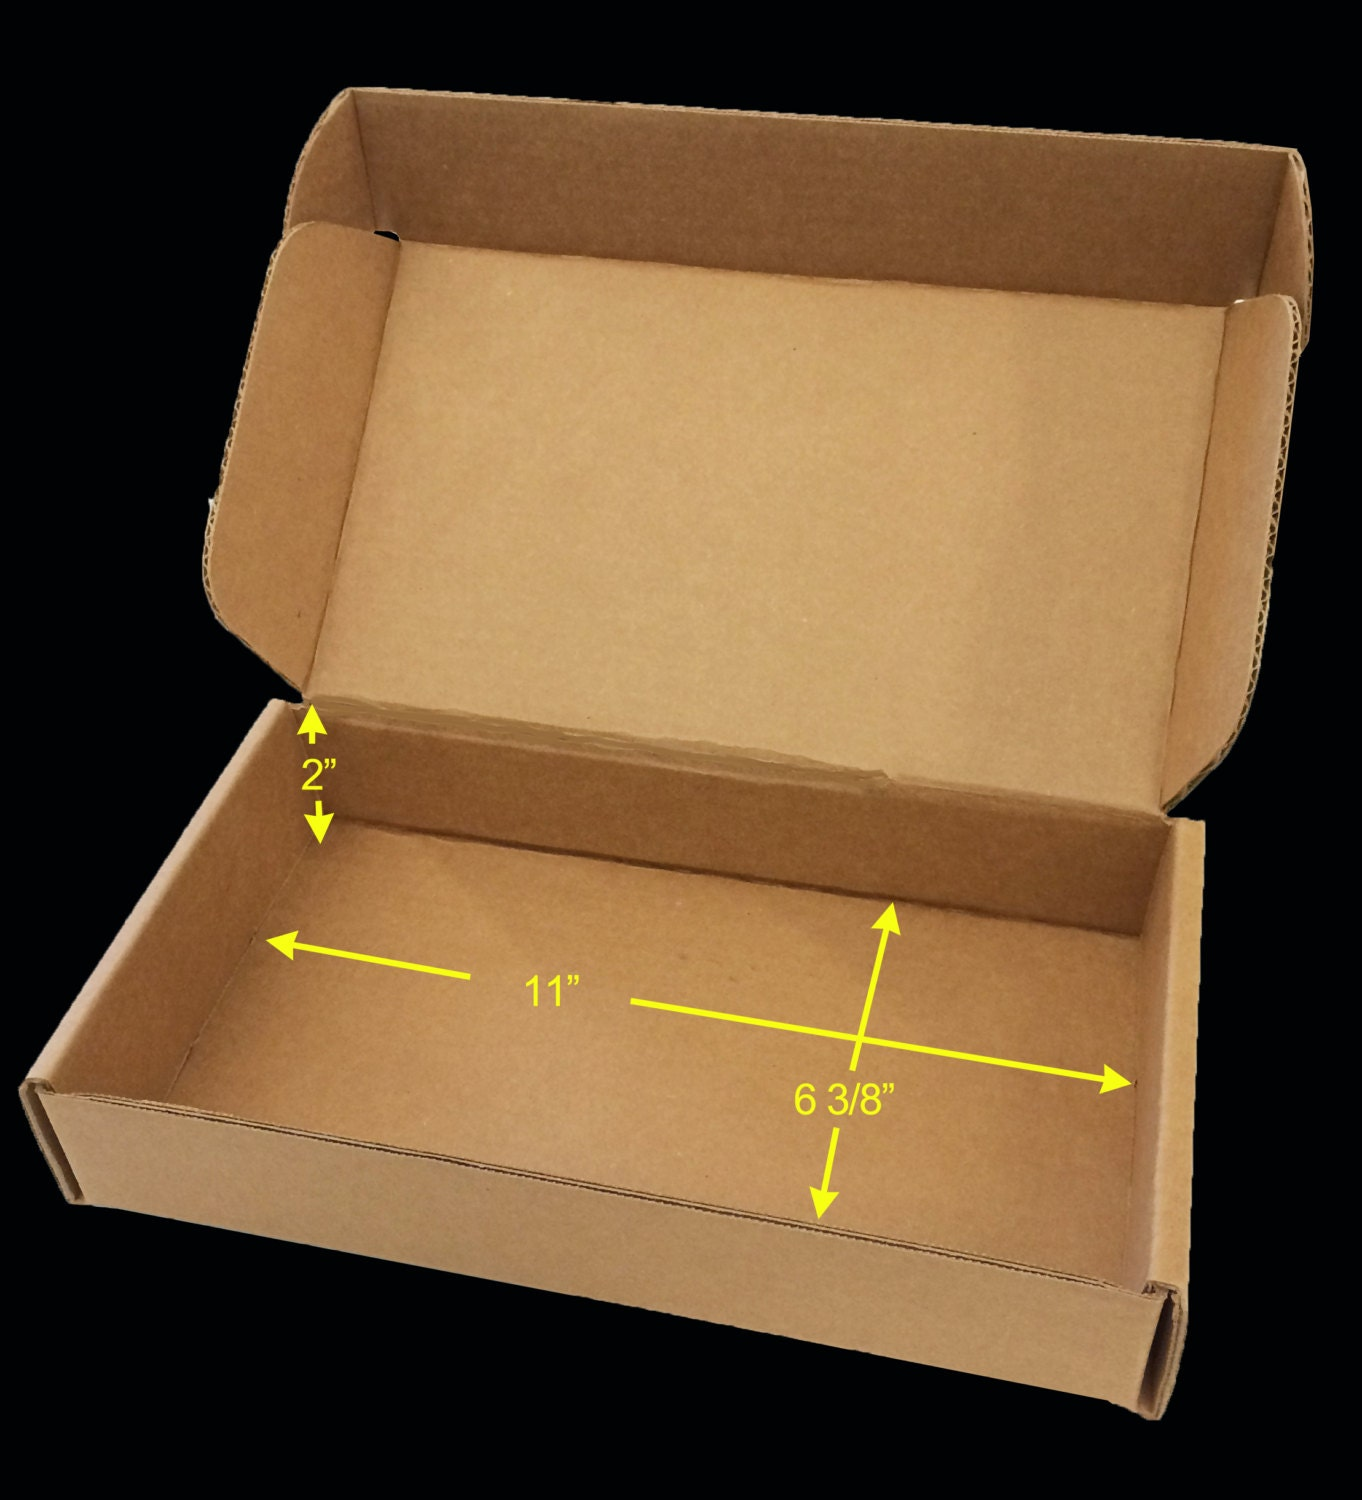 case of 25 tuck top saverboxes box perfectly fits usps flat. Black Bedroom Furniture Sets. Home Design Ideas